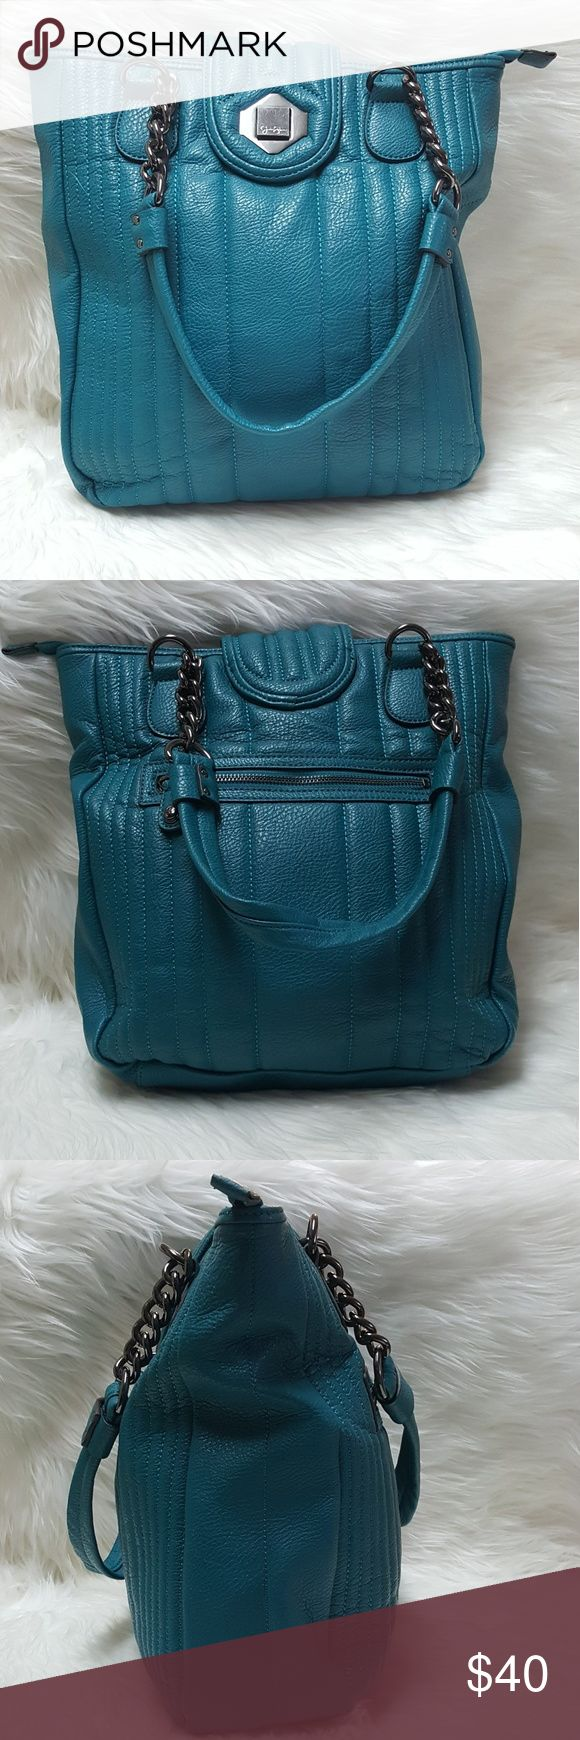 """JESSICA SIMPSON teal large shoulder bag tote JESSICA SIMPSON teal large shoulder bag tote, excellent condition  Measurements are approximate  14 x 13 x 4.5 10"""" strap drop height Jessica Simpson Bags Totes"""